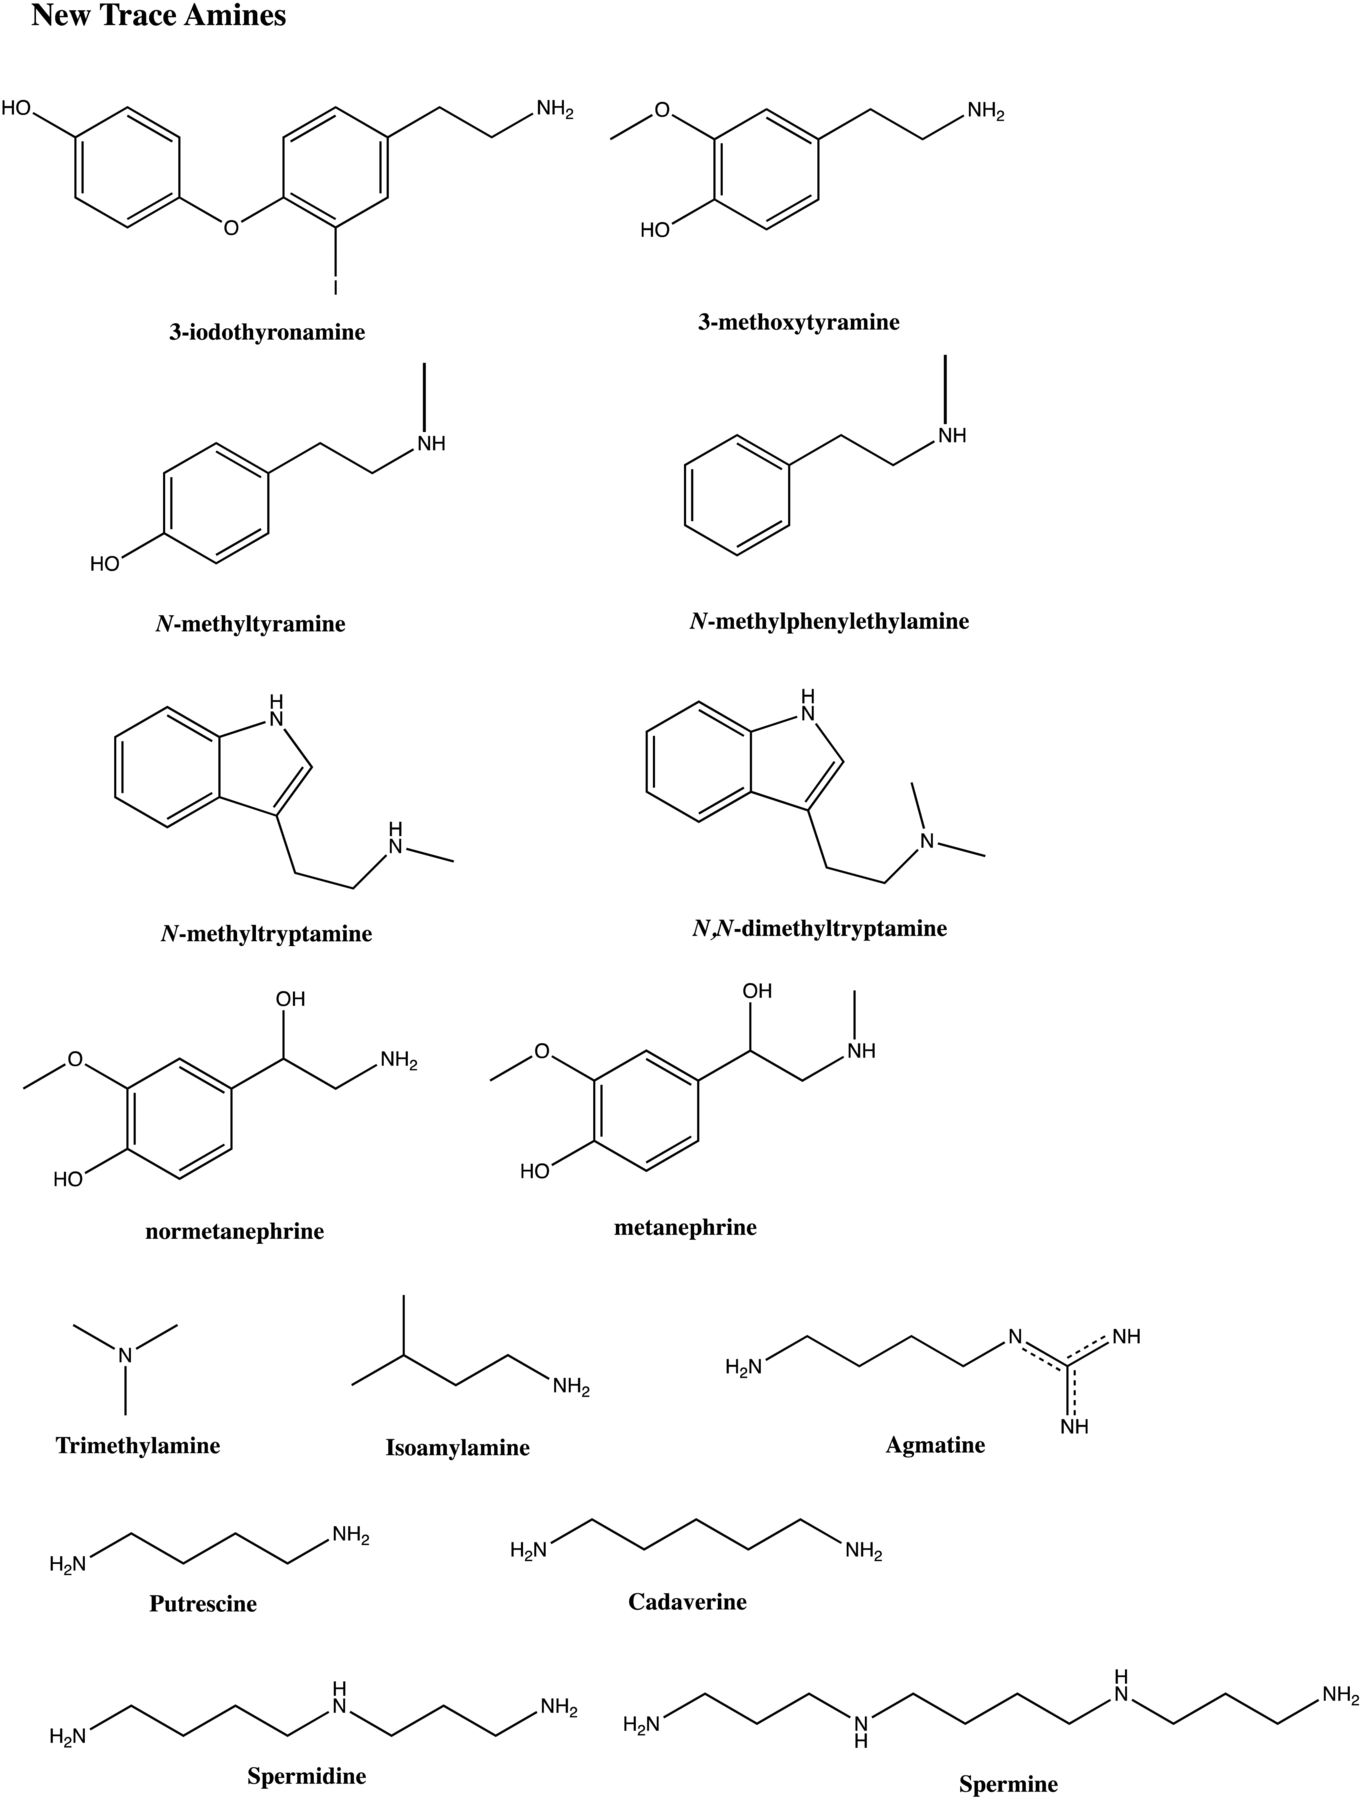 Trace Amines and Their Receptors | Pharmacological Reviews